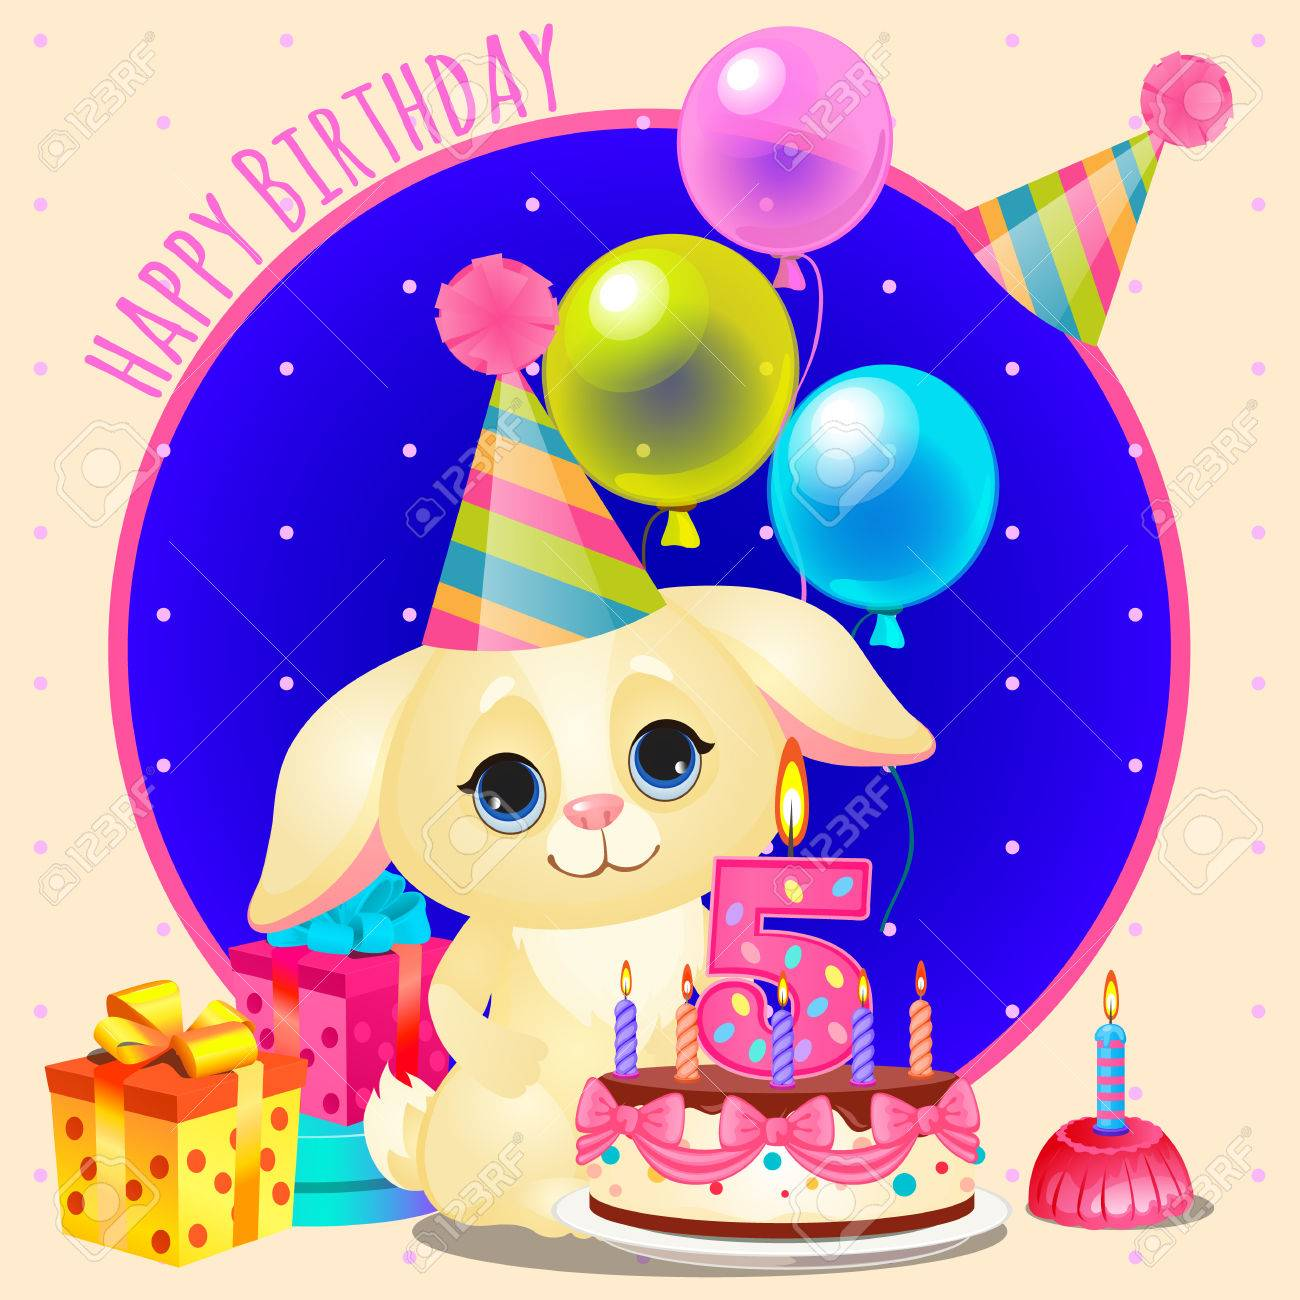 Happy Birthday Greeting Card With Cute Dog And Cake Candle In The Shape